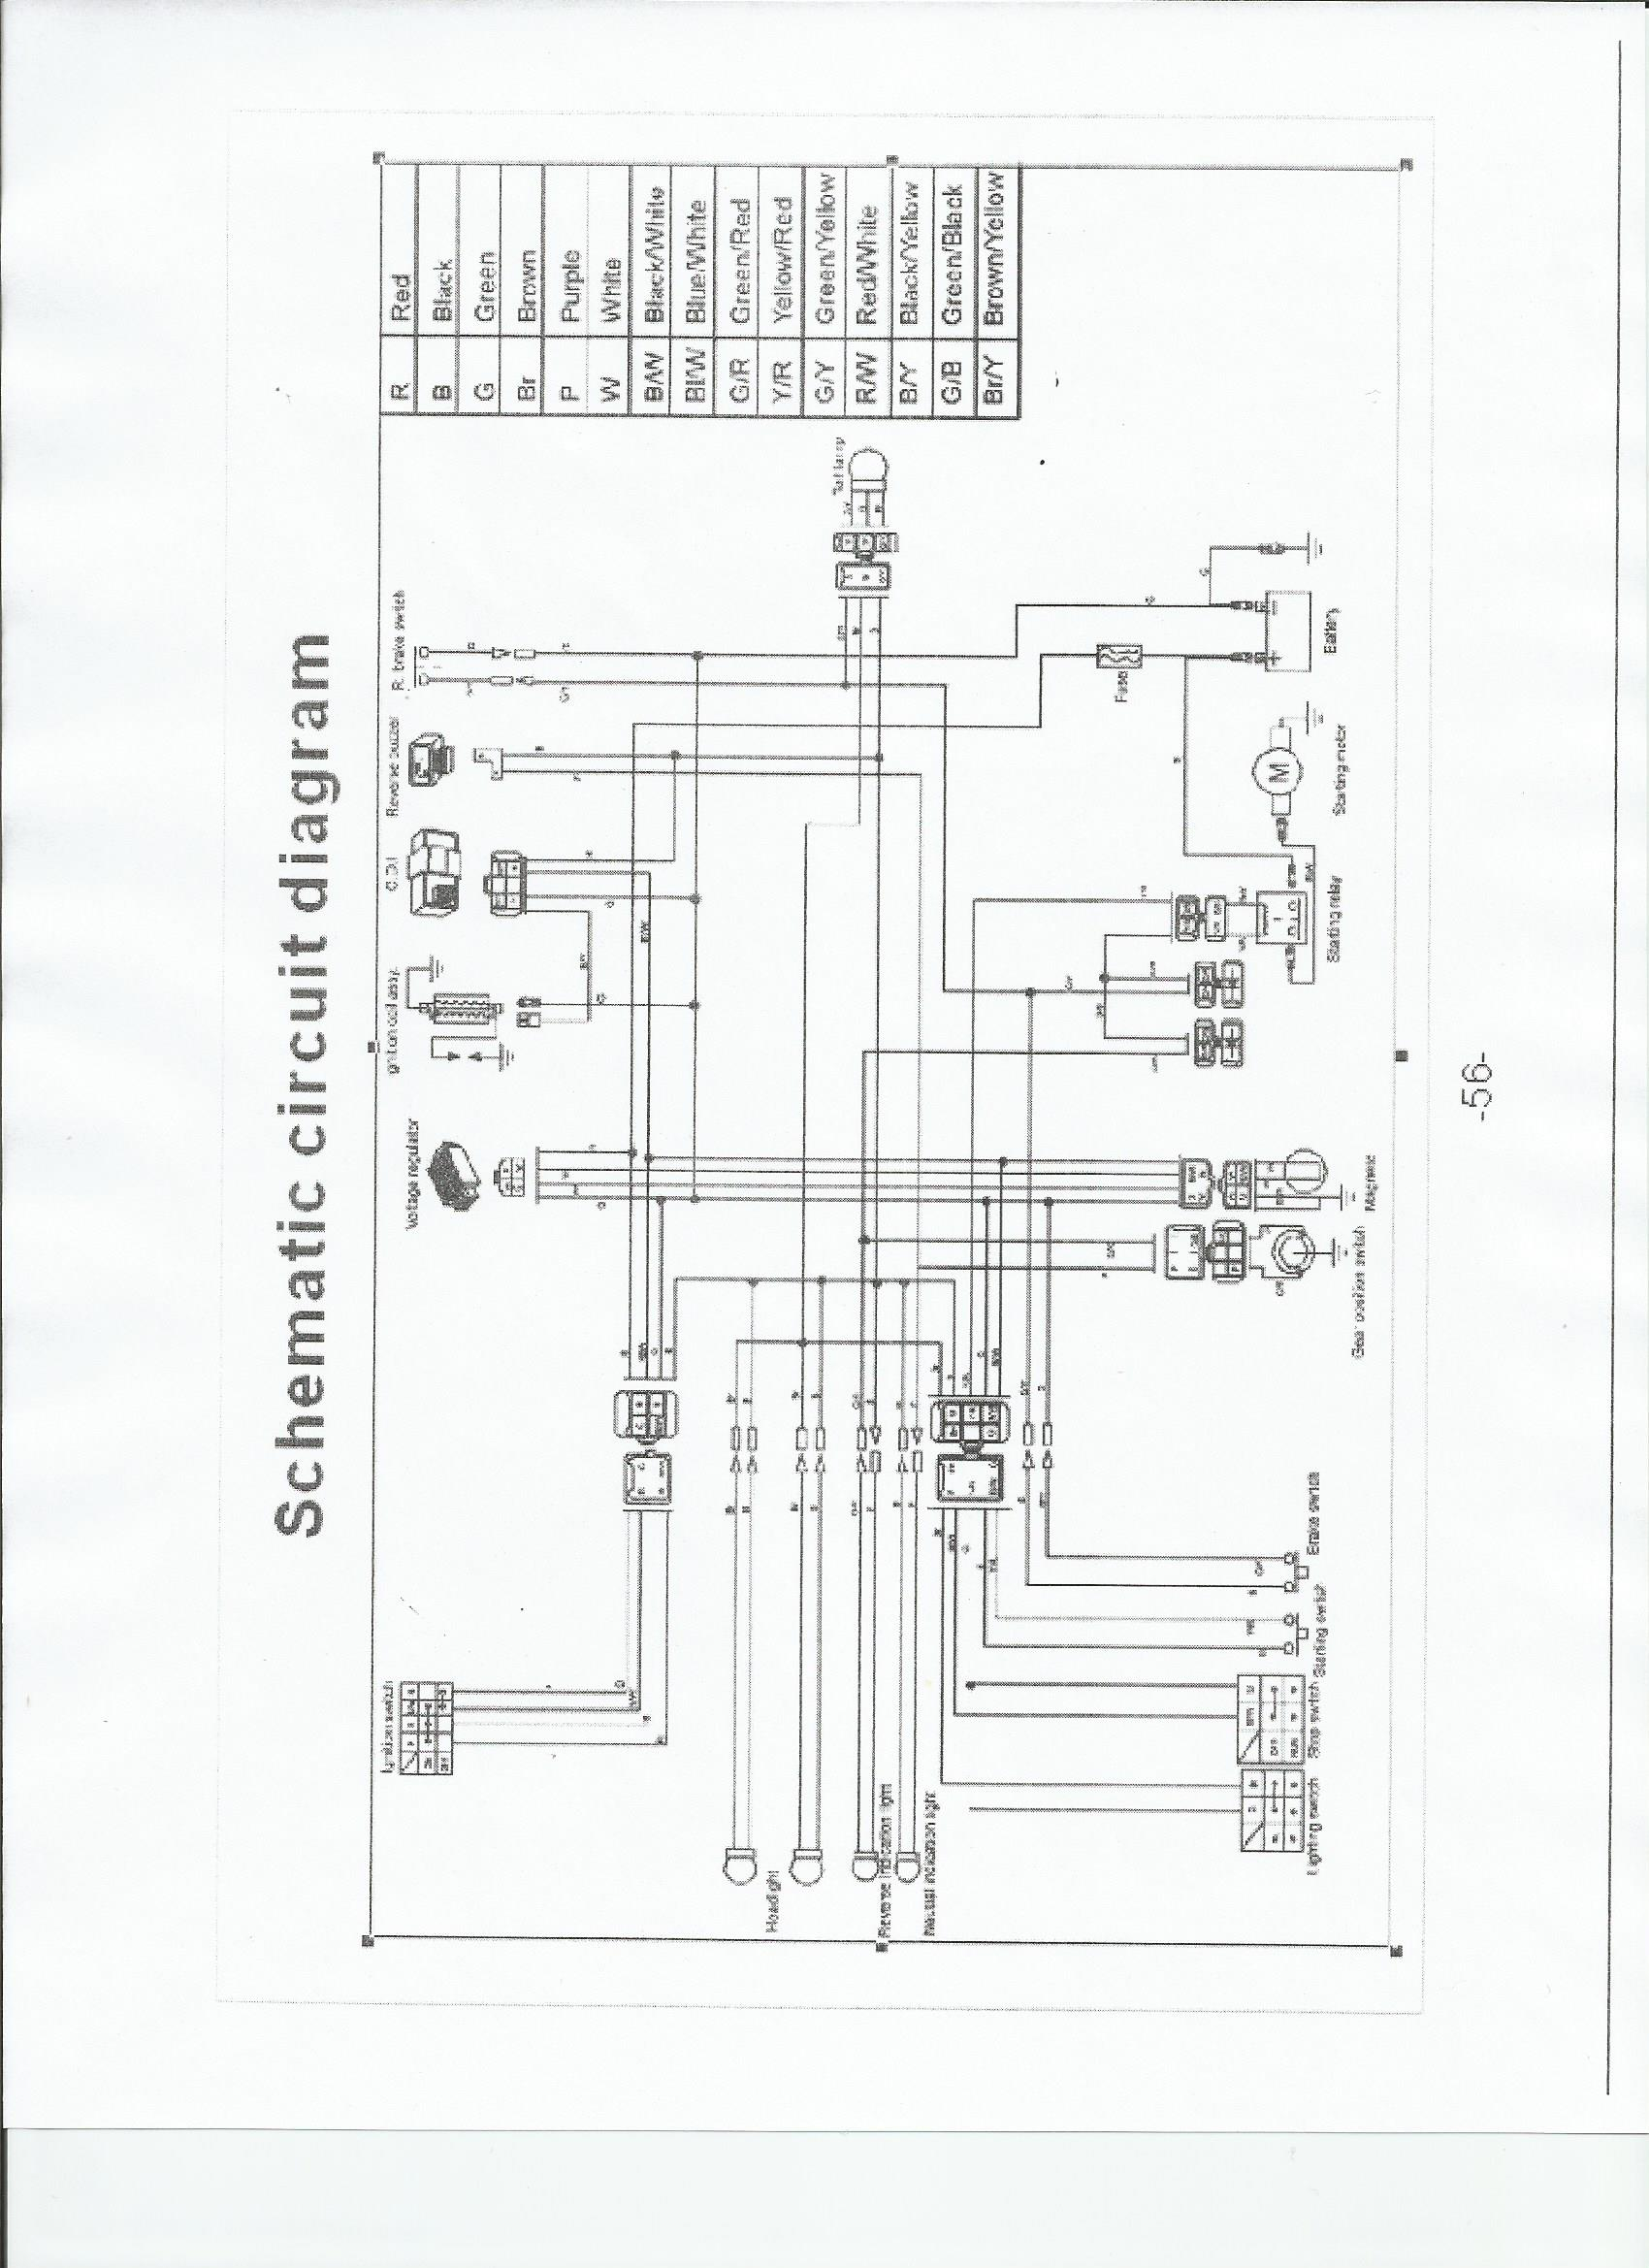 tao 125 atv wiring diagram everything you need to know about rh newsnanalysis co tao tao 125 wiring diagram tao tao 110 wiring diagram